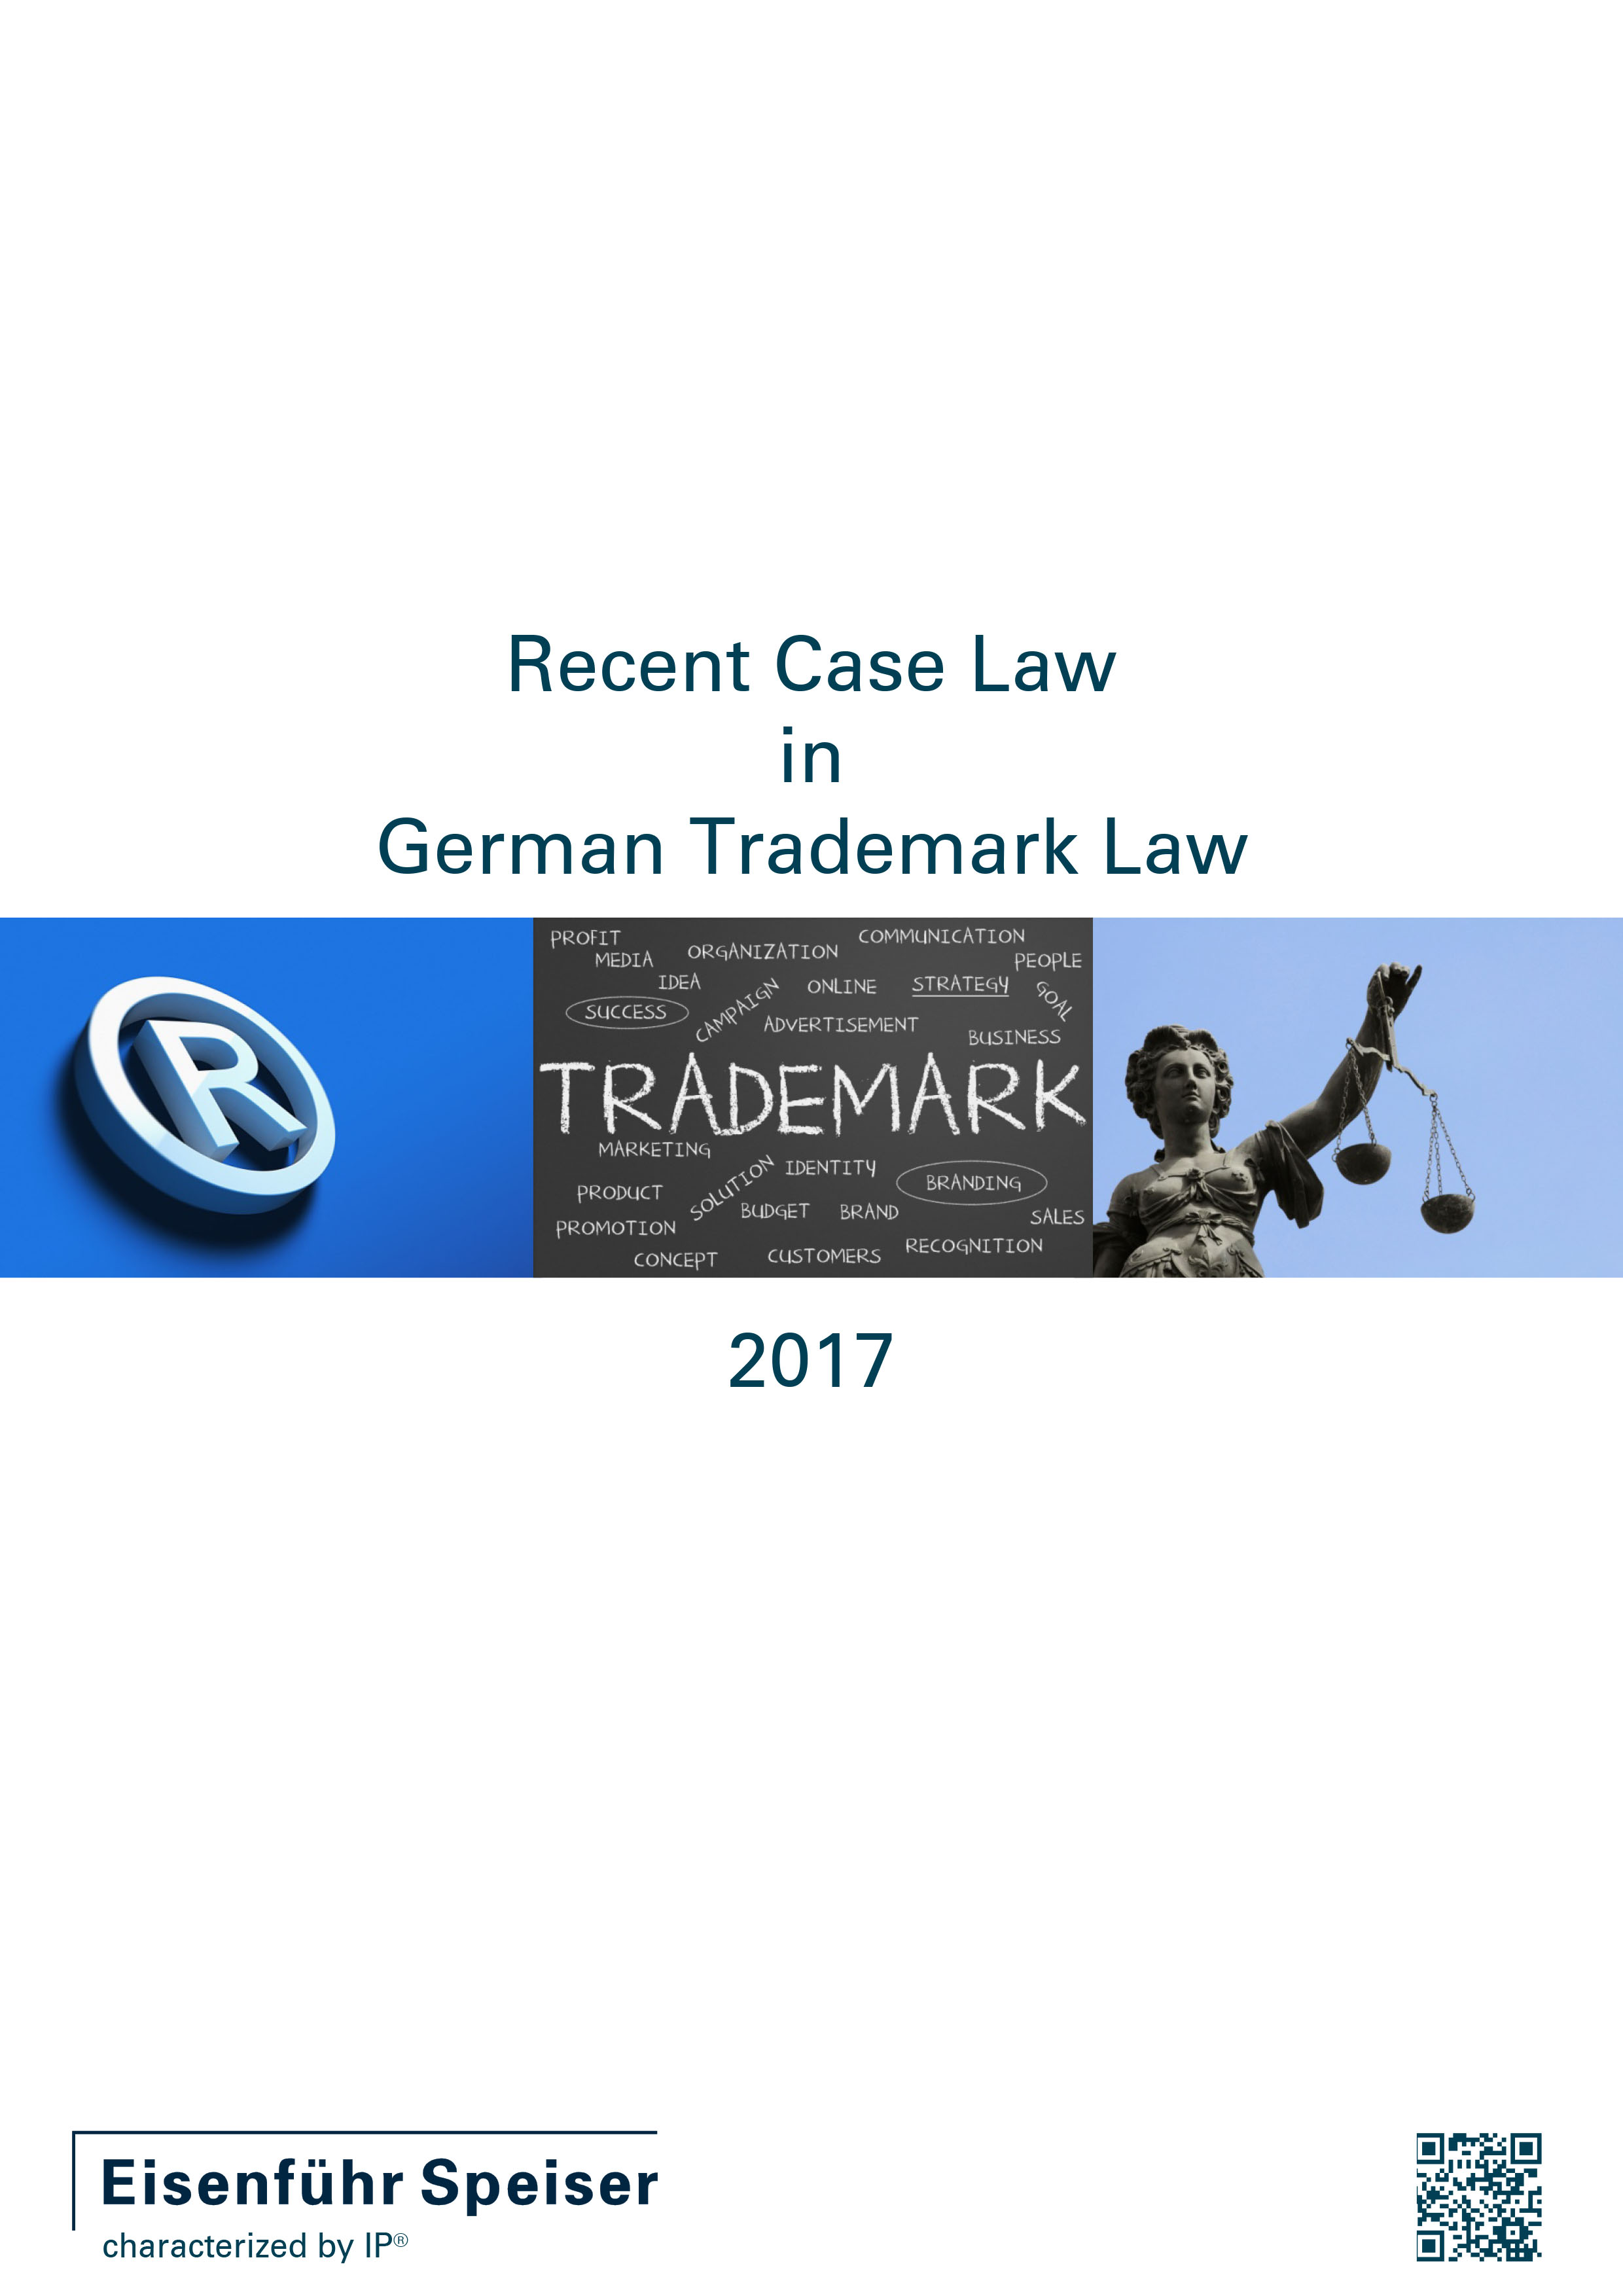 Recent Case Law in German Trademark Law 2017